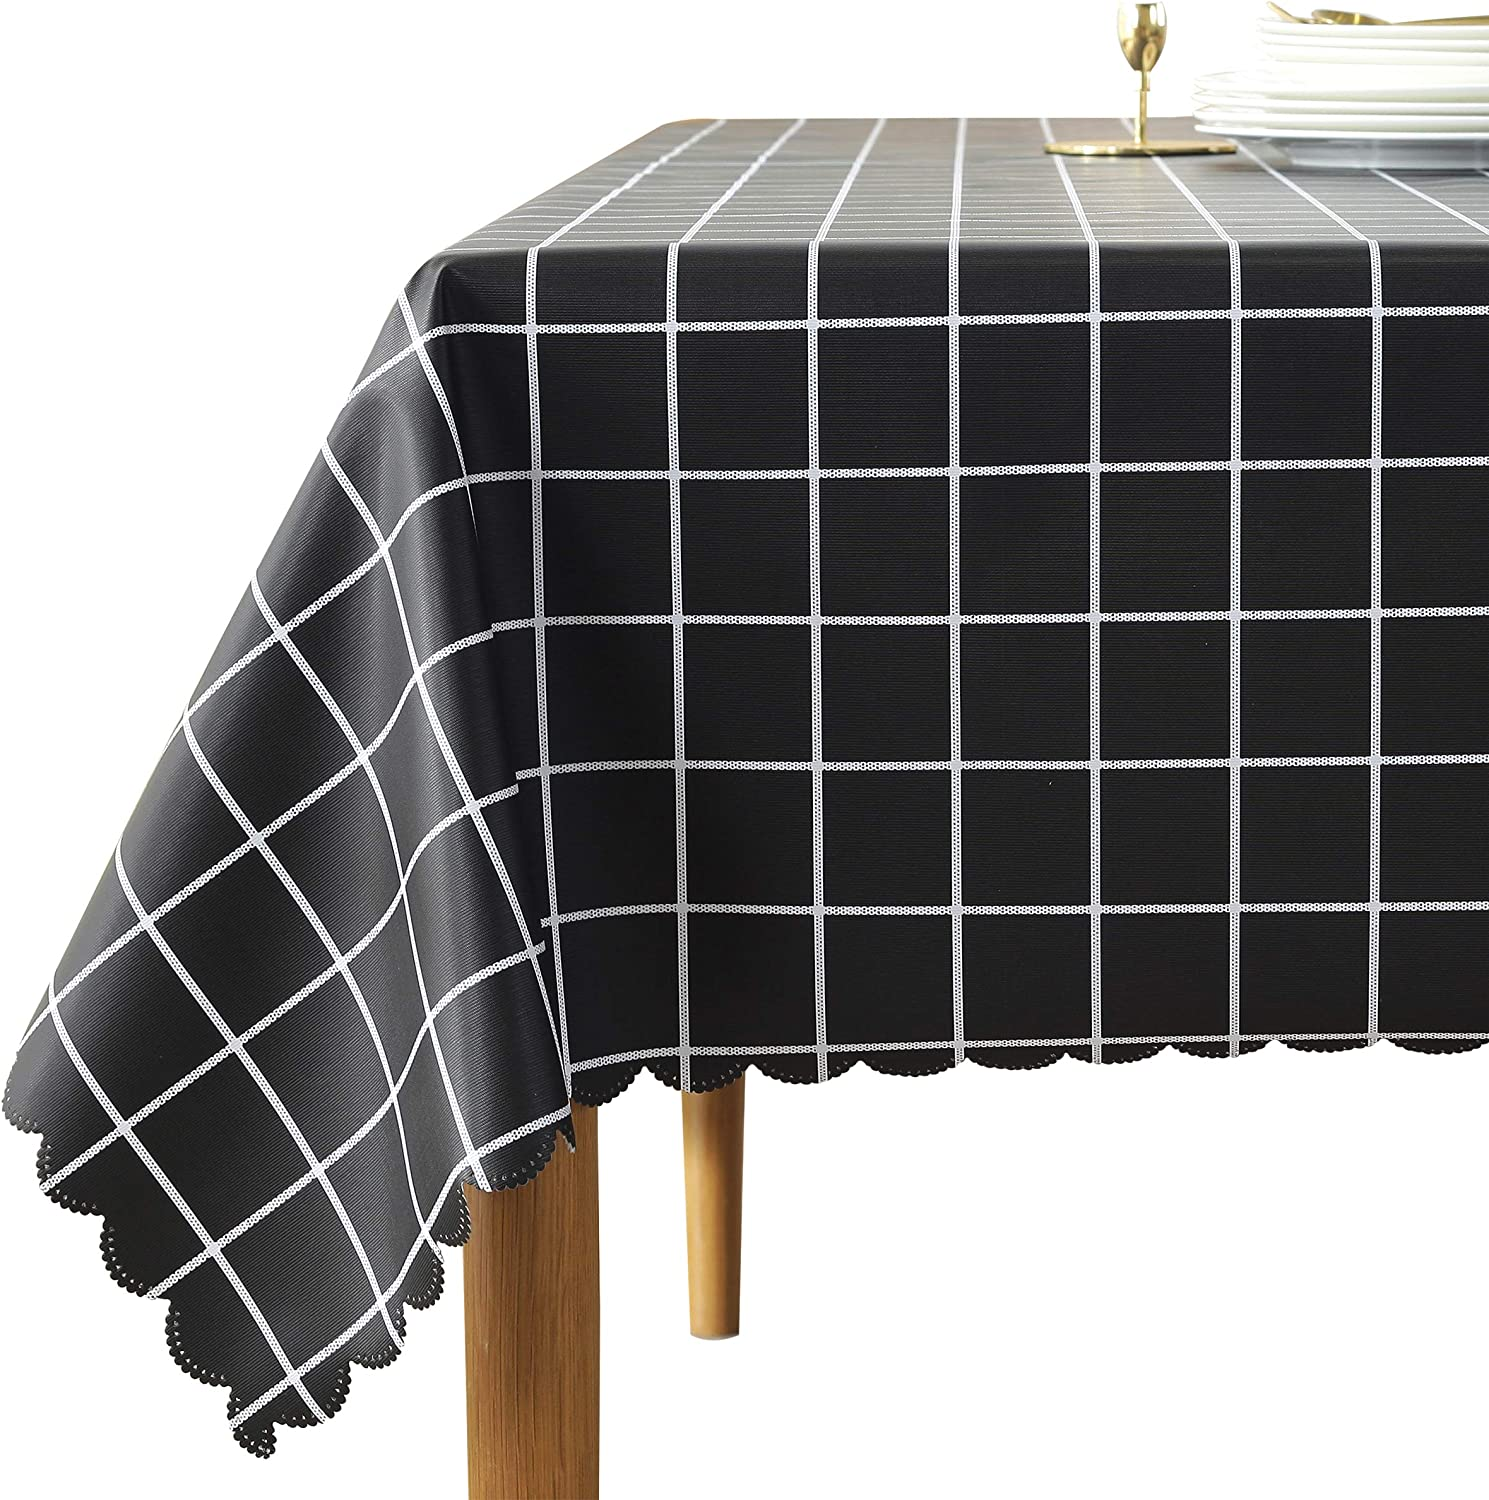 Black Checkered Vinyl Tablecloth Rectangle 54 x 78 Inch Wipeable Heavy Duty Picnic Camping Indoor Outdoor Rectangular Reusable Plastic Plaid Table Cloth Flannel Backed Vinyl Oblong tablecloths